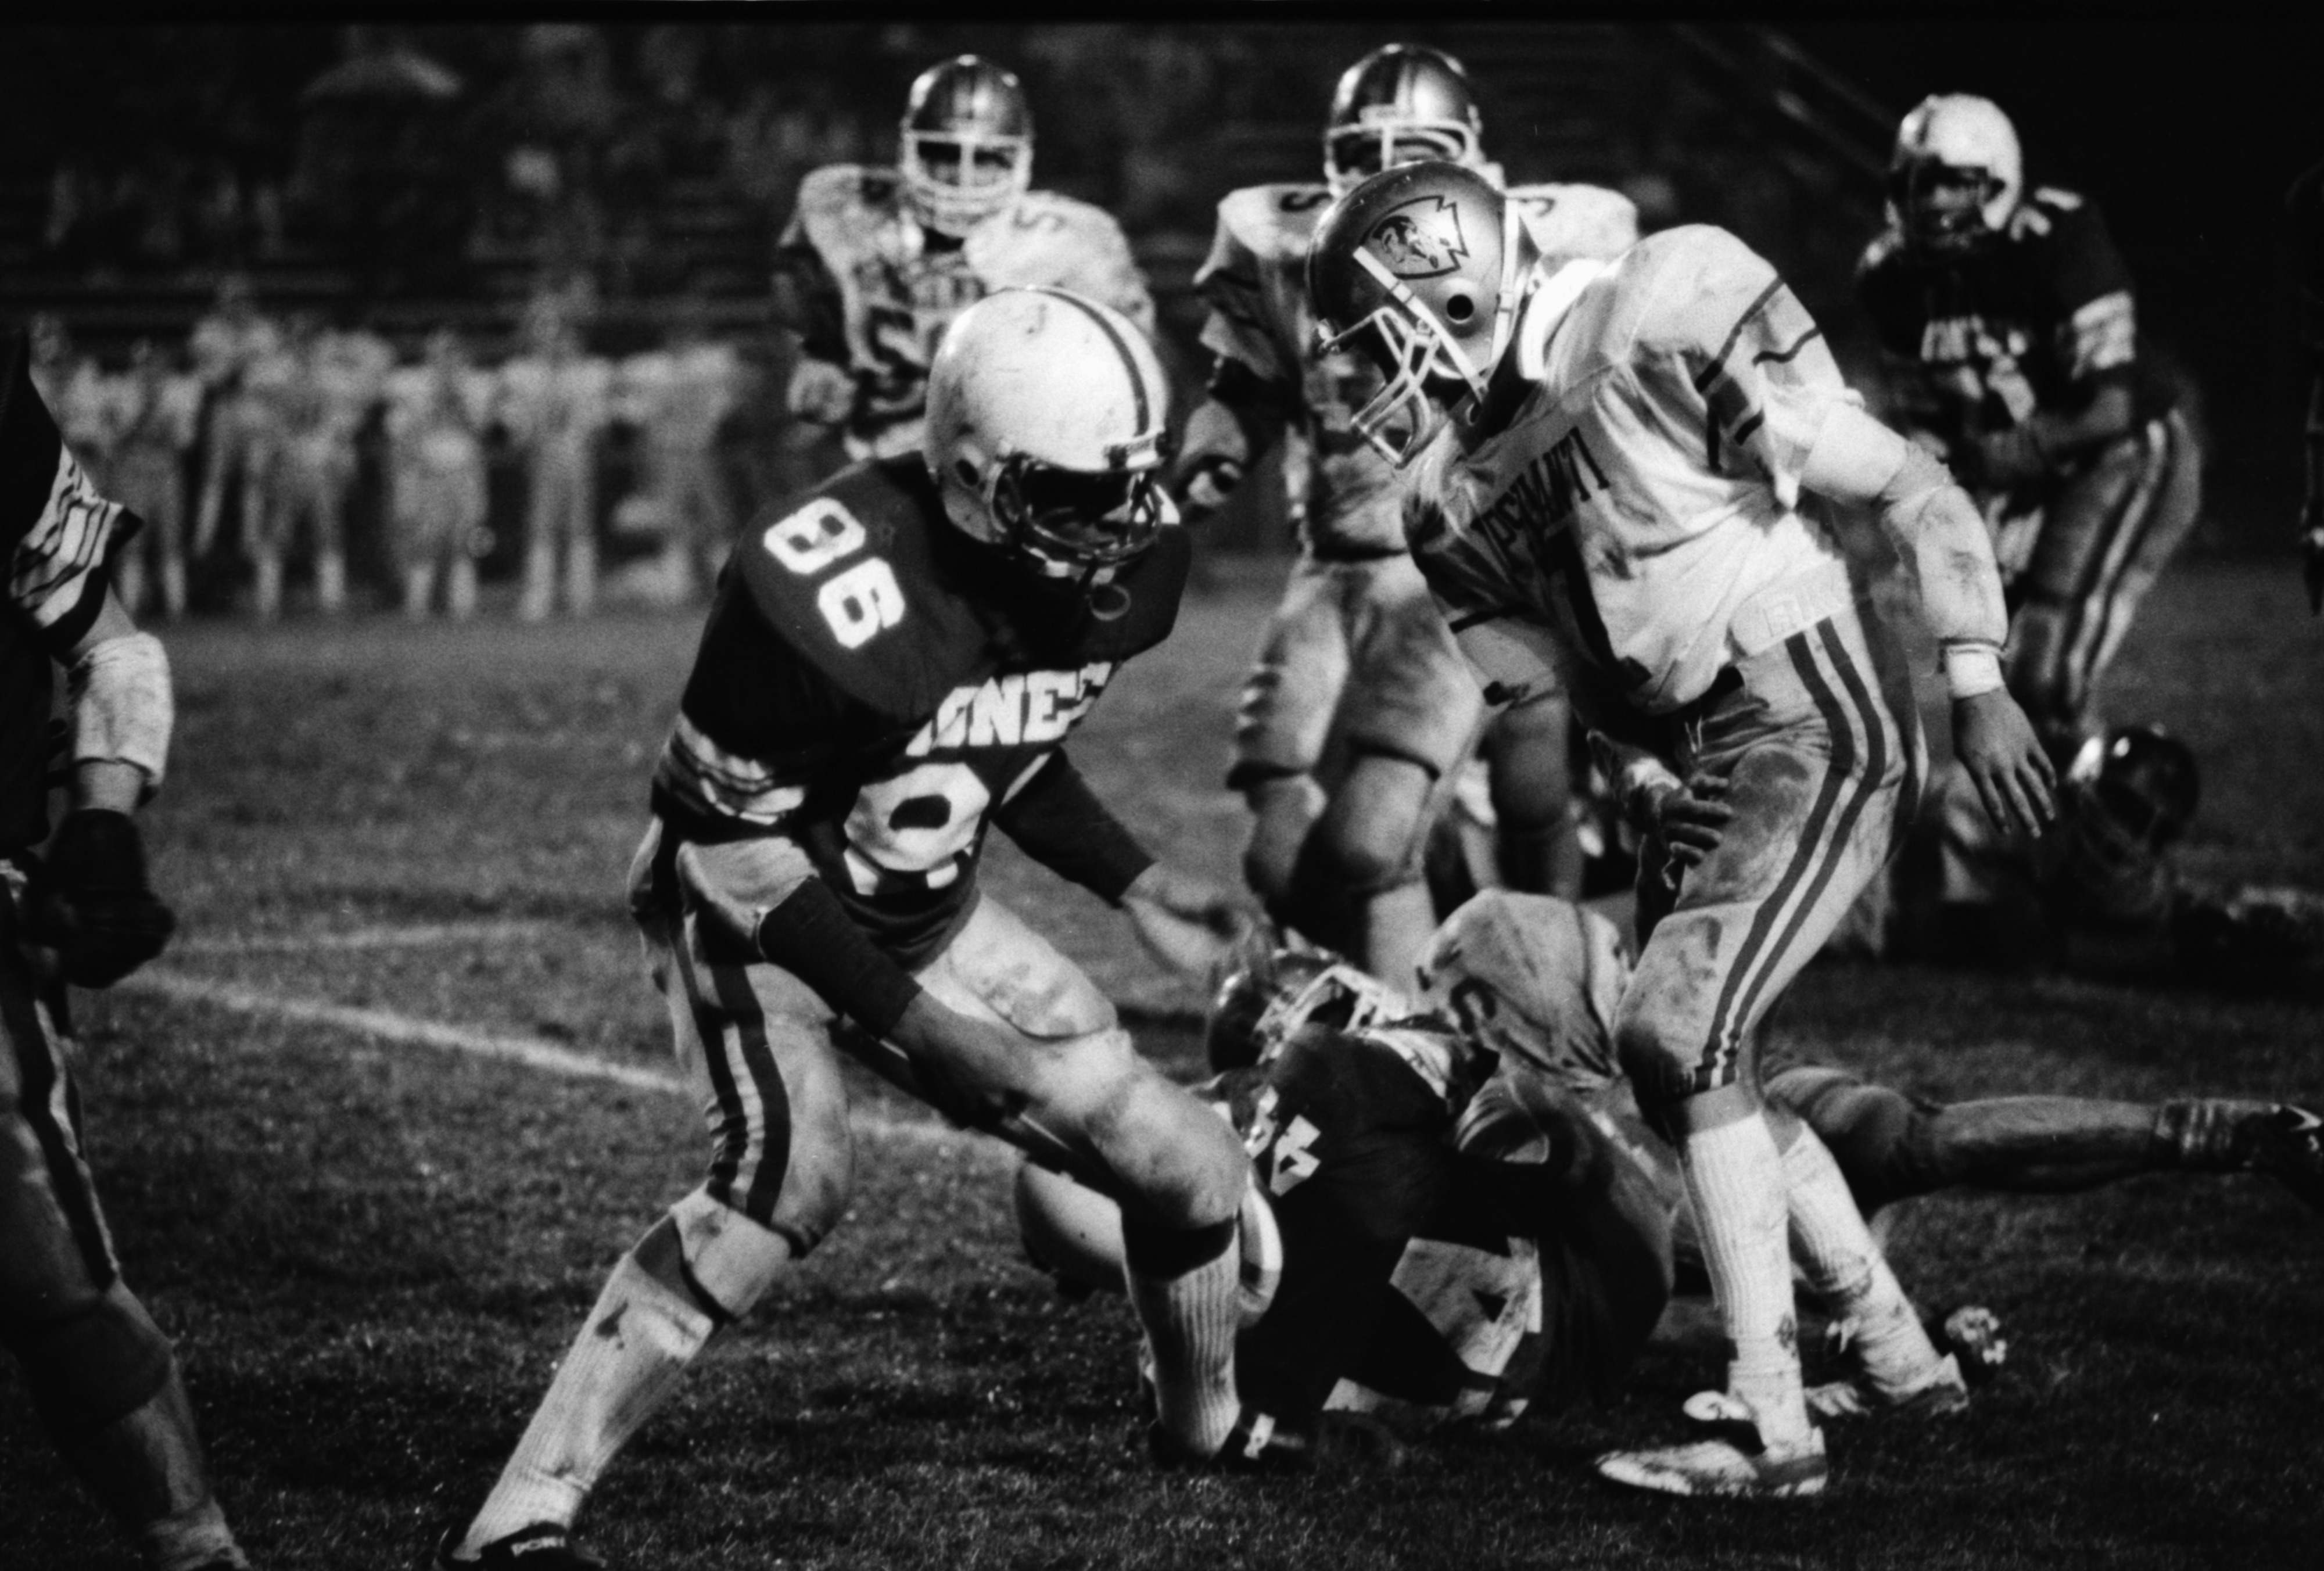 Pioneer Action vs. Ypsilanti, October 1985 image